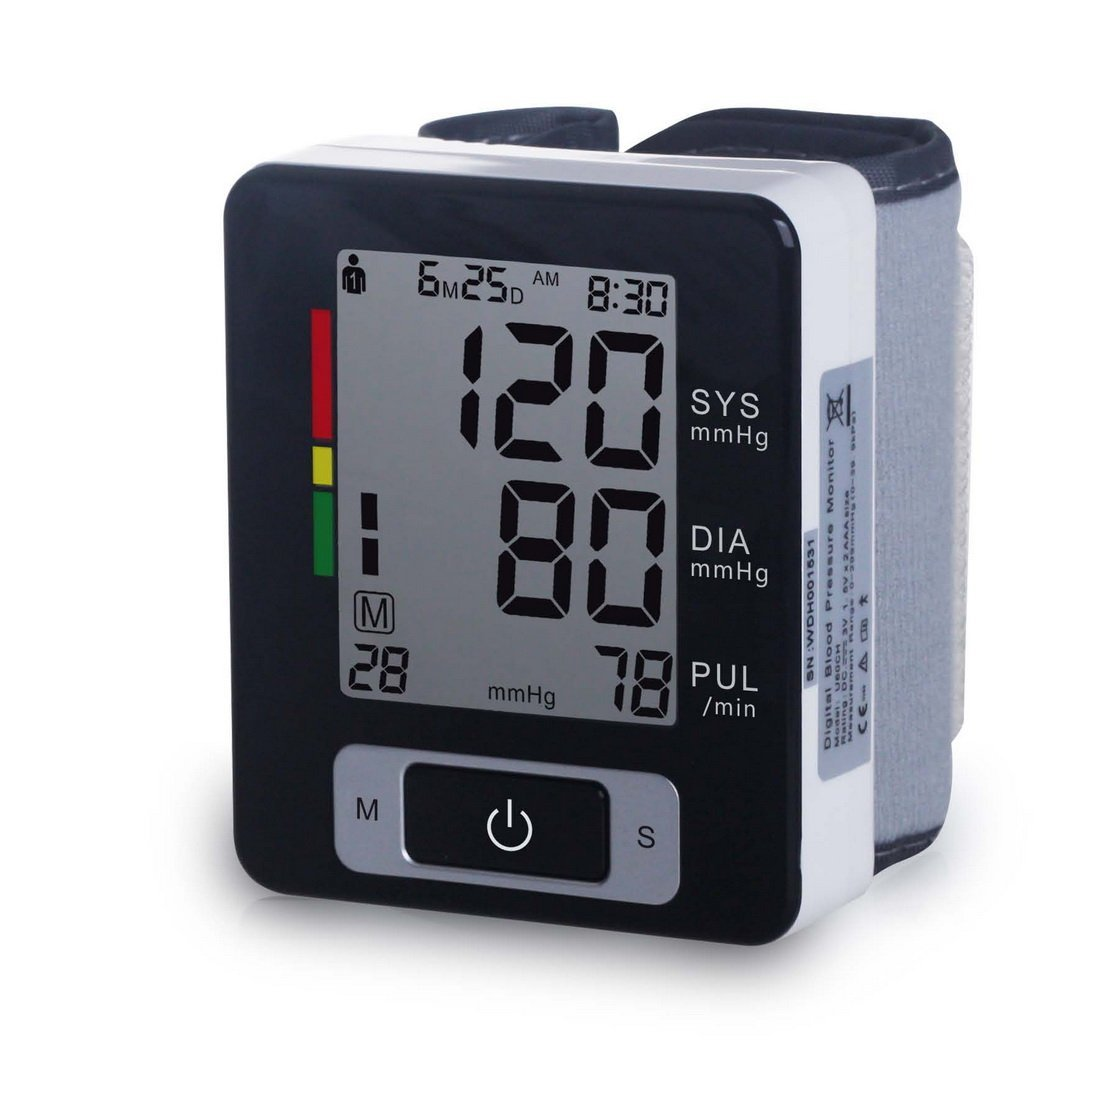 Automatic Wrist Blood Pressure Monitor FDA Approved with Portable Case, Two User Modes,180 Memory Capacity Easy to Operate & Store (black)